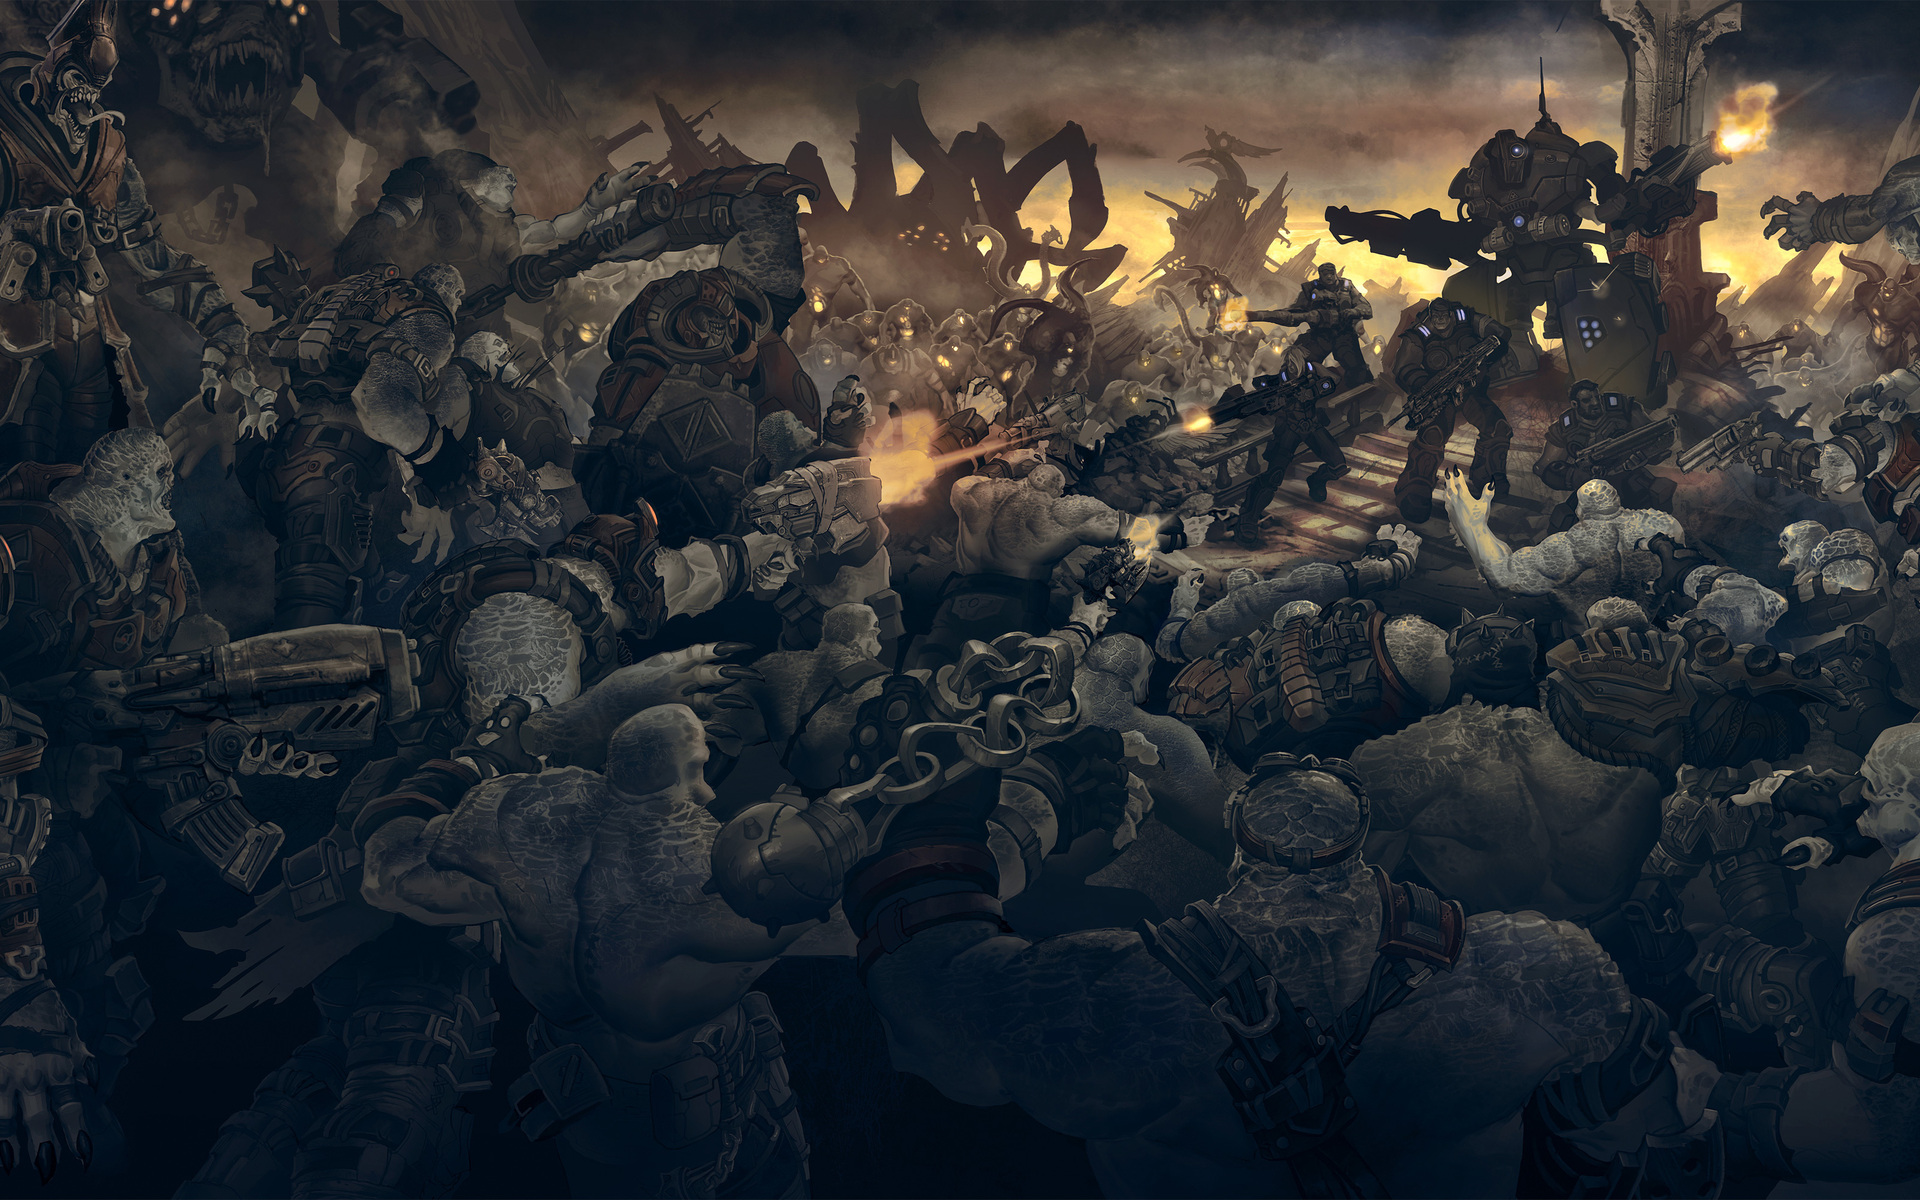 Gears Of War Full HD Wallpaper And Background Image